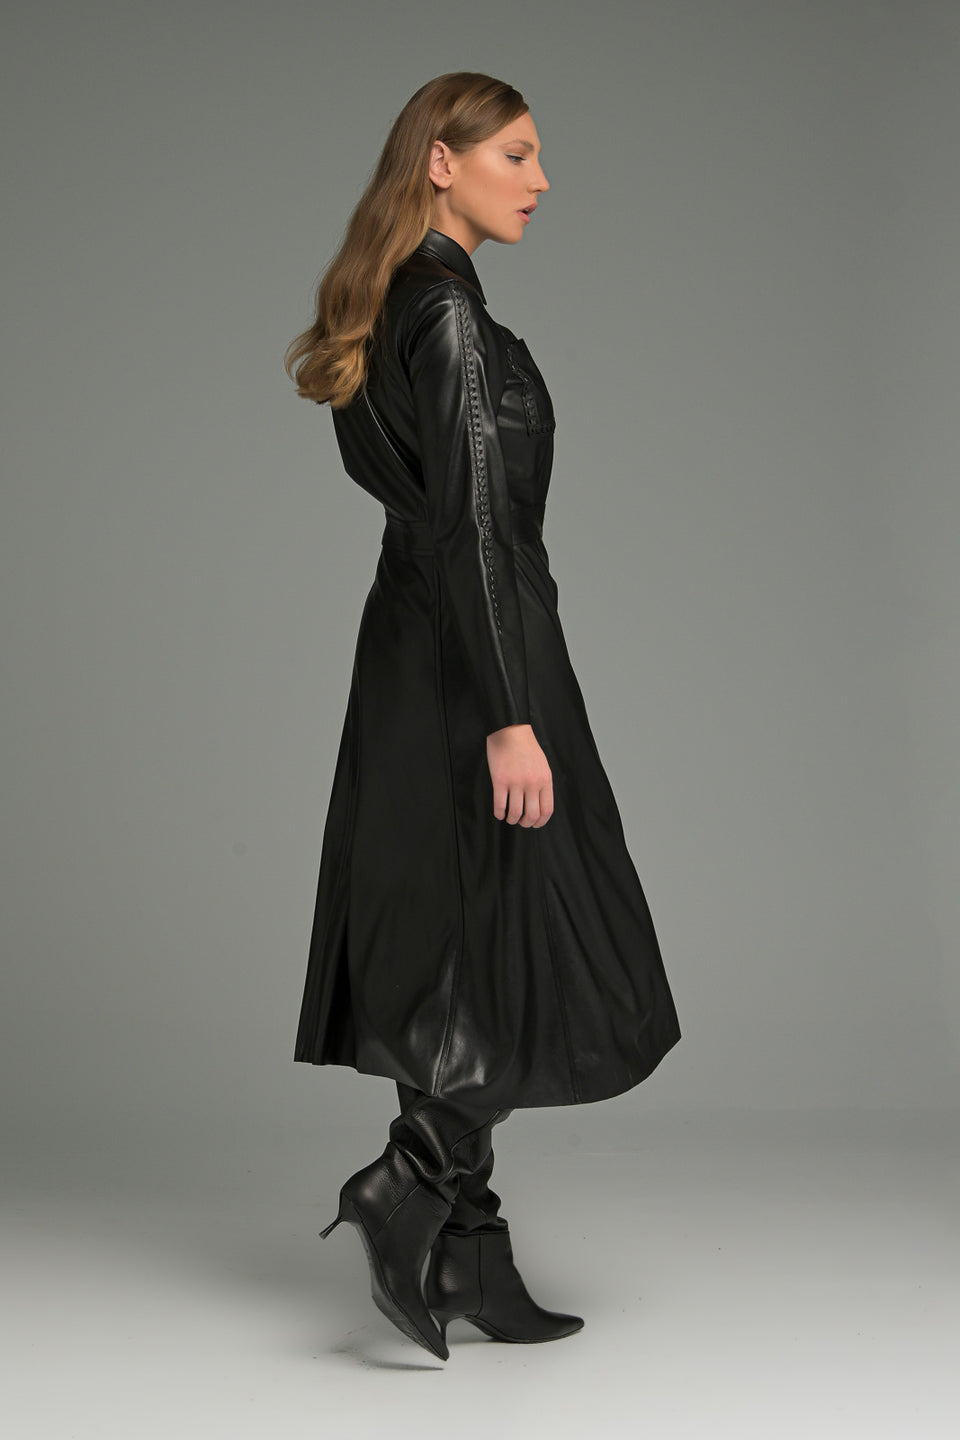 BLACK FAUX LEATHER BUTTON THROUGH MIDI SHIRT DRESS BLACK FAUX LEATHER BUTTON THROUGH MIDI SHIRT DRESS